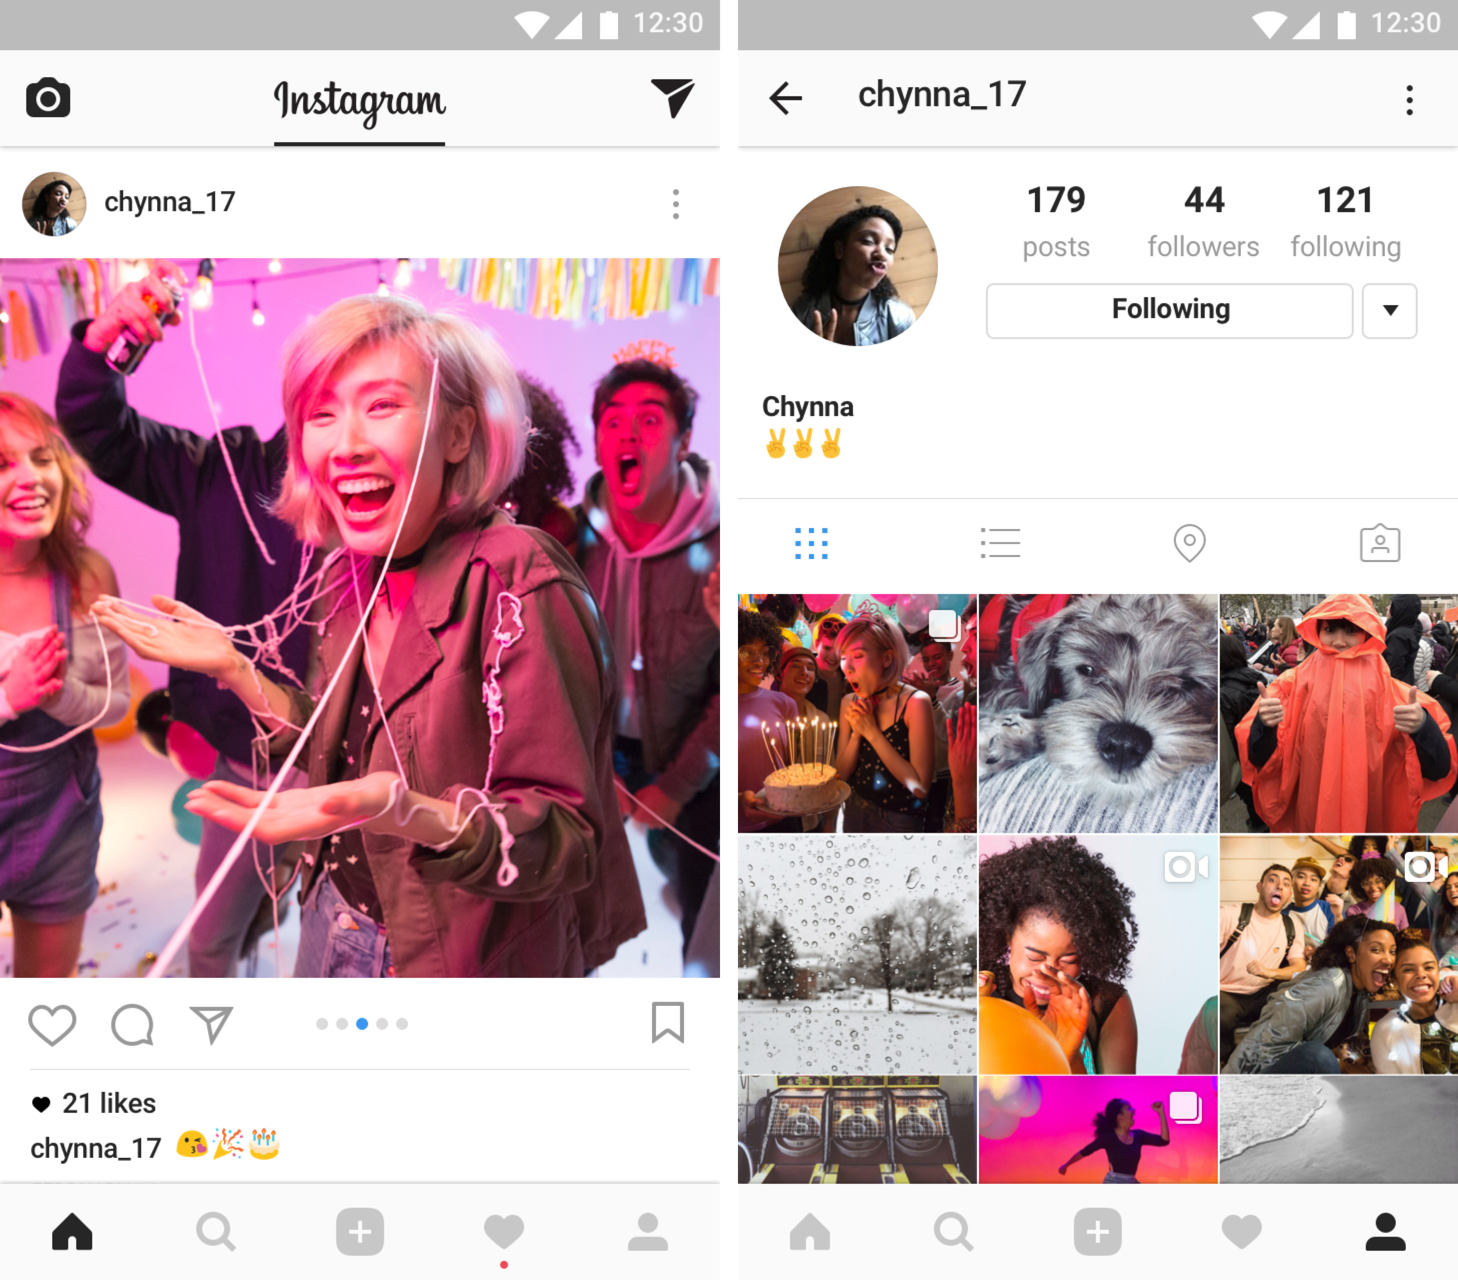 Instagram's carousel-style image sharing is open to all